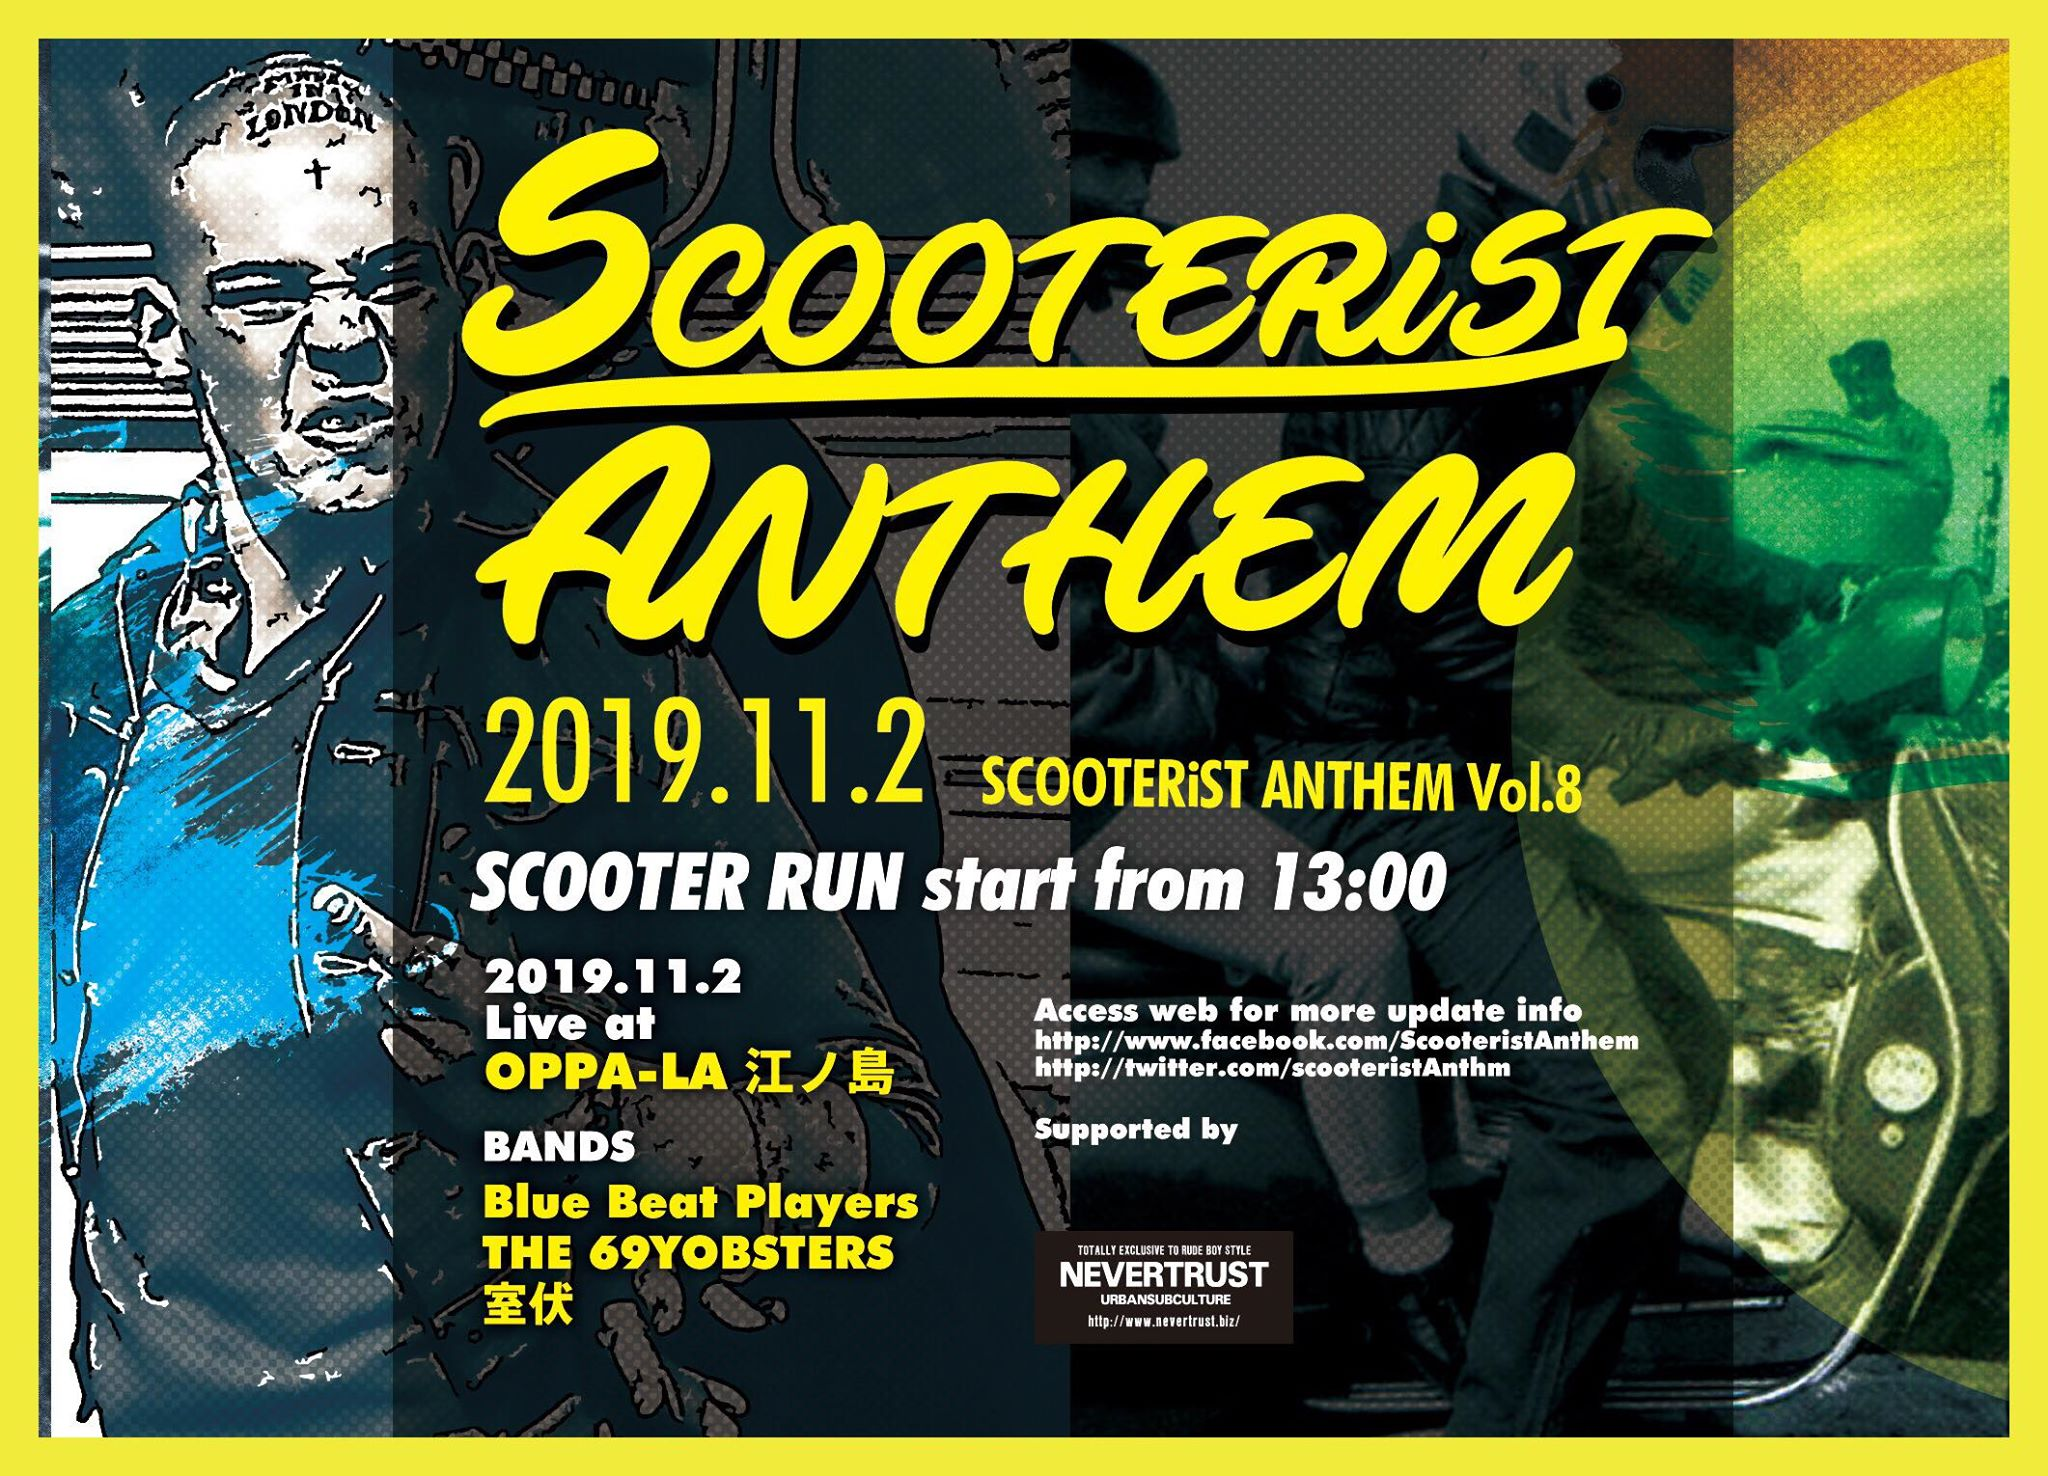 SCOOTERiST ANTHEMでJOINTED通販で_f0225627_2023299.jpg